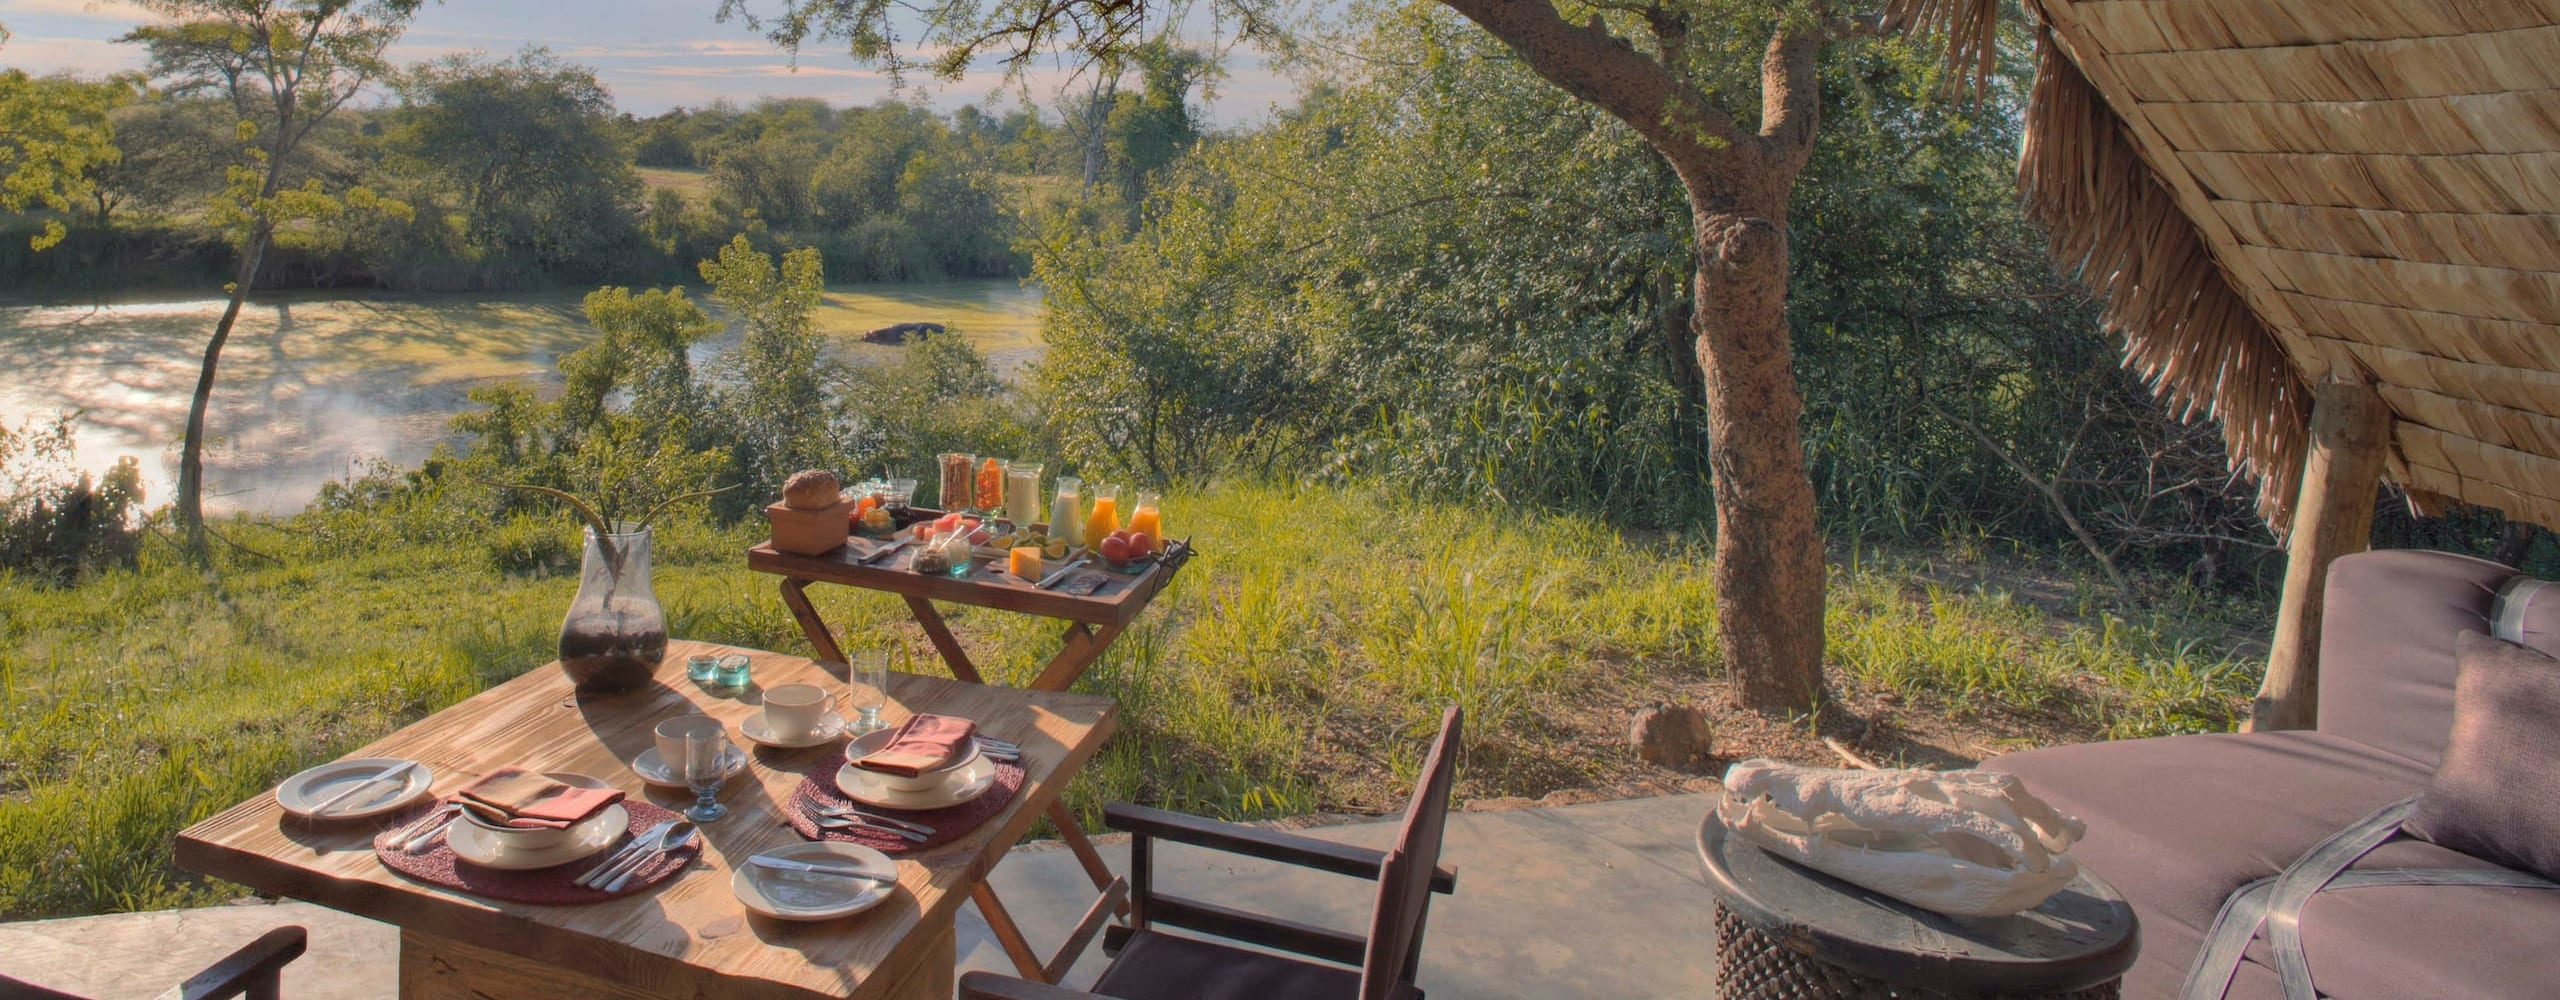 &Beyond Grumeti Serengeti Tented Camp s ideally situated for experiencing the drama of the Grumeti River crossings. © &Beyond